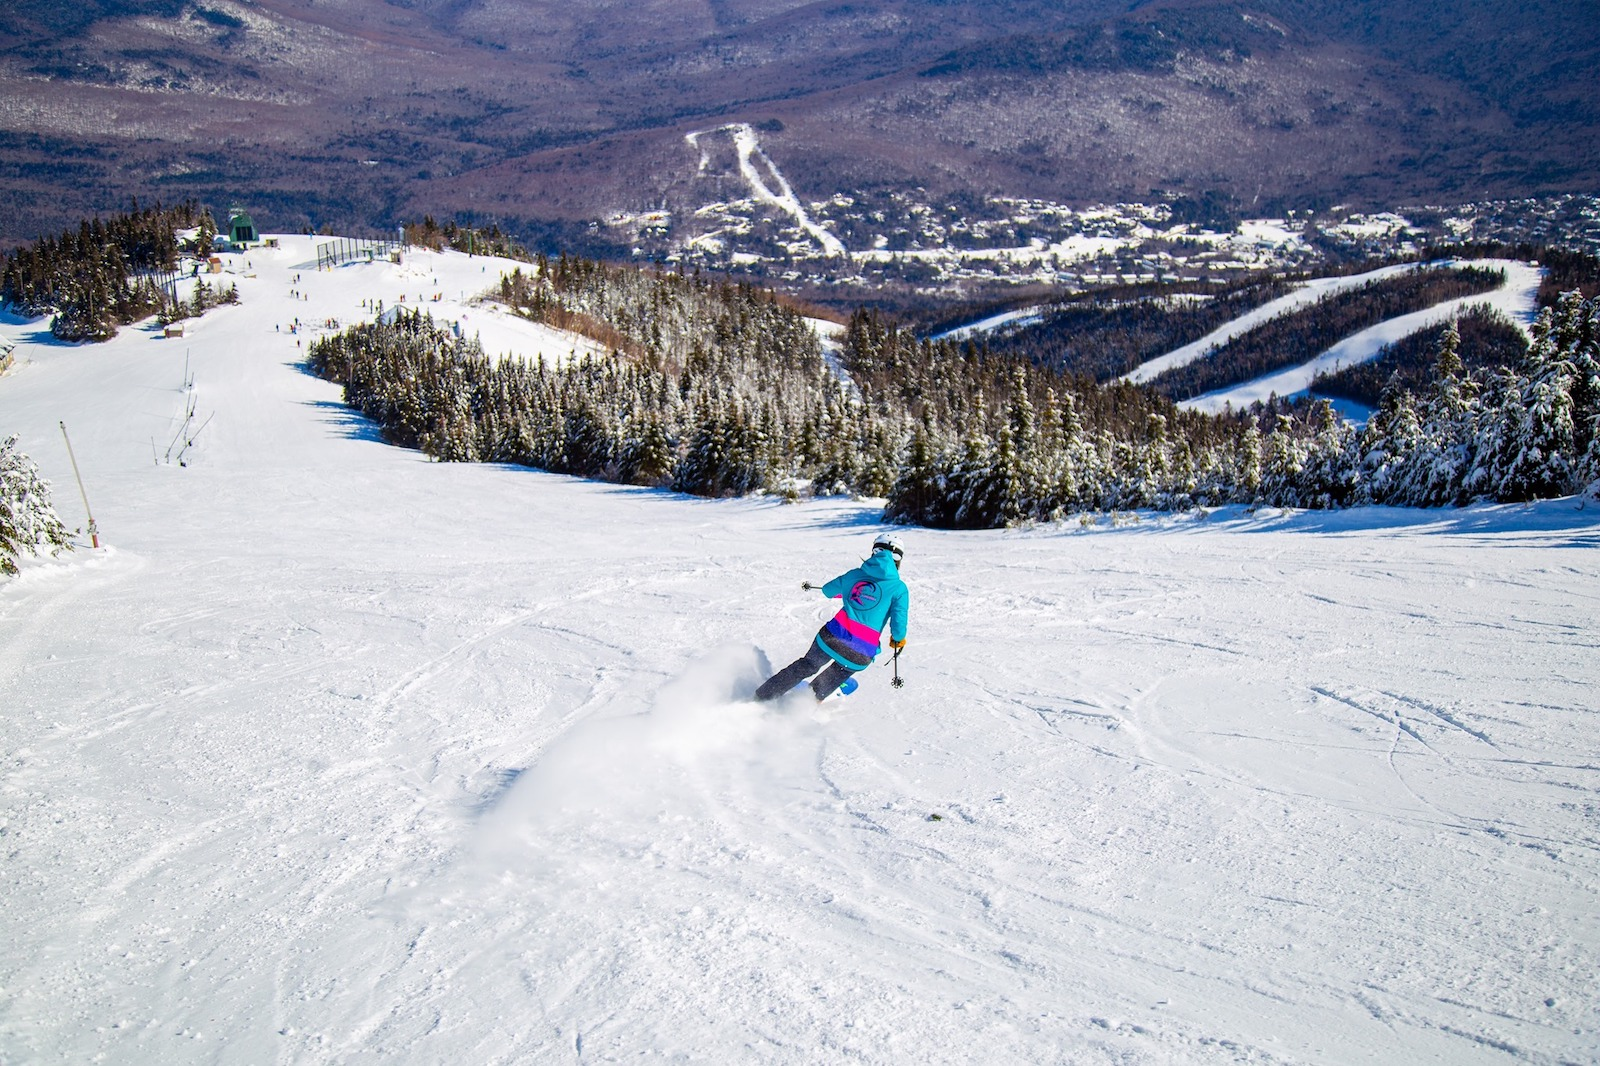 Image of a skier in bright blue and pink tearing up the slopes at Waterville Valley Resort, in New Hampshire